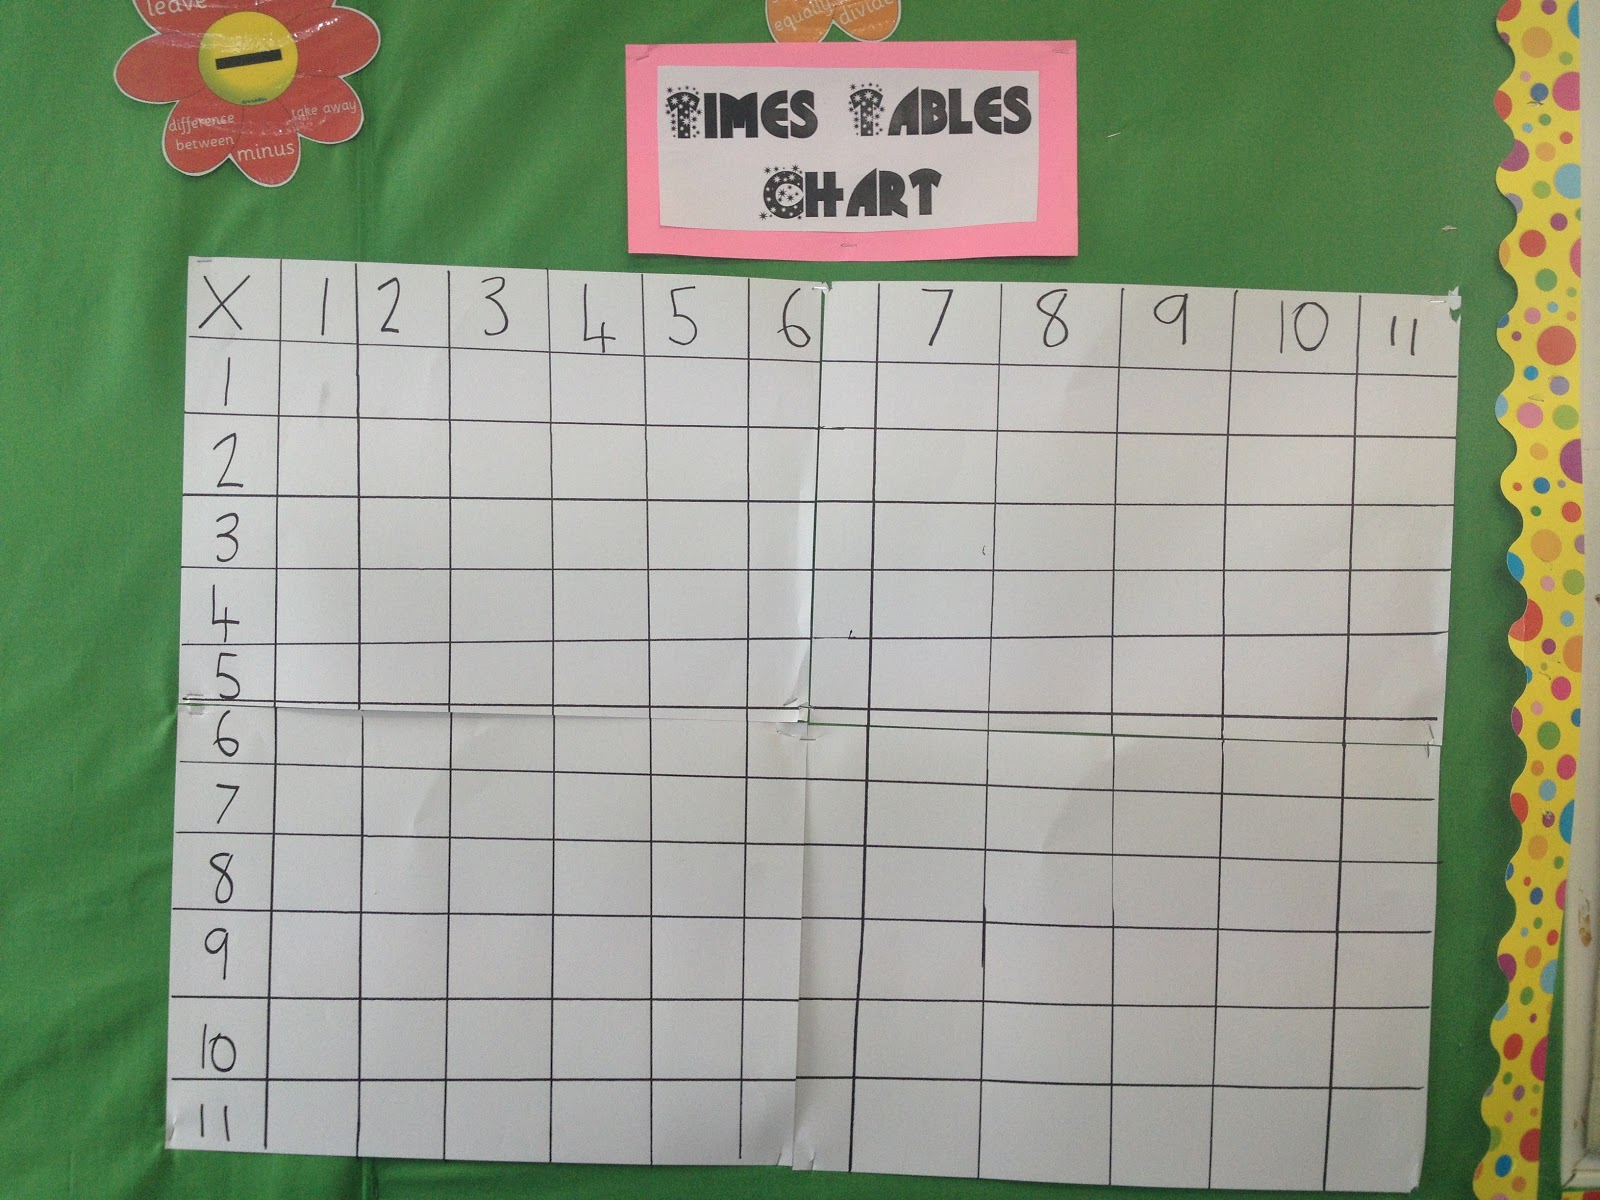 13times table new calendar template site for 13 times table chart